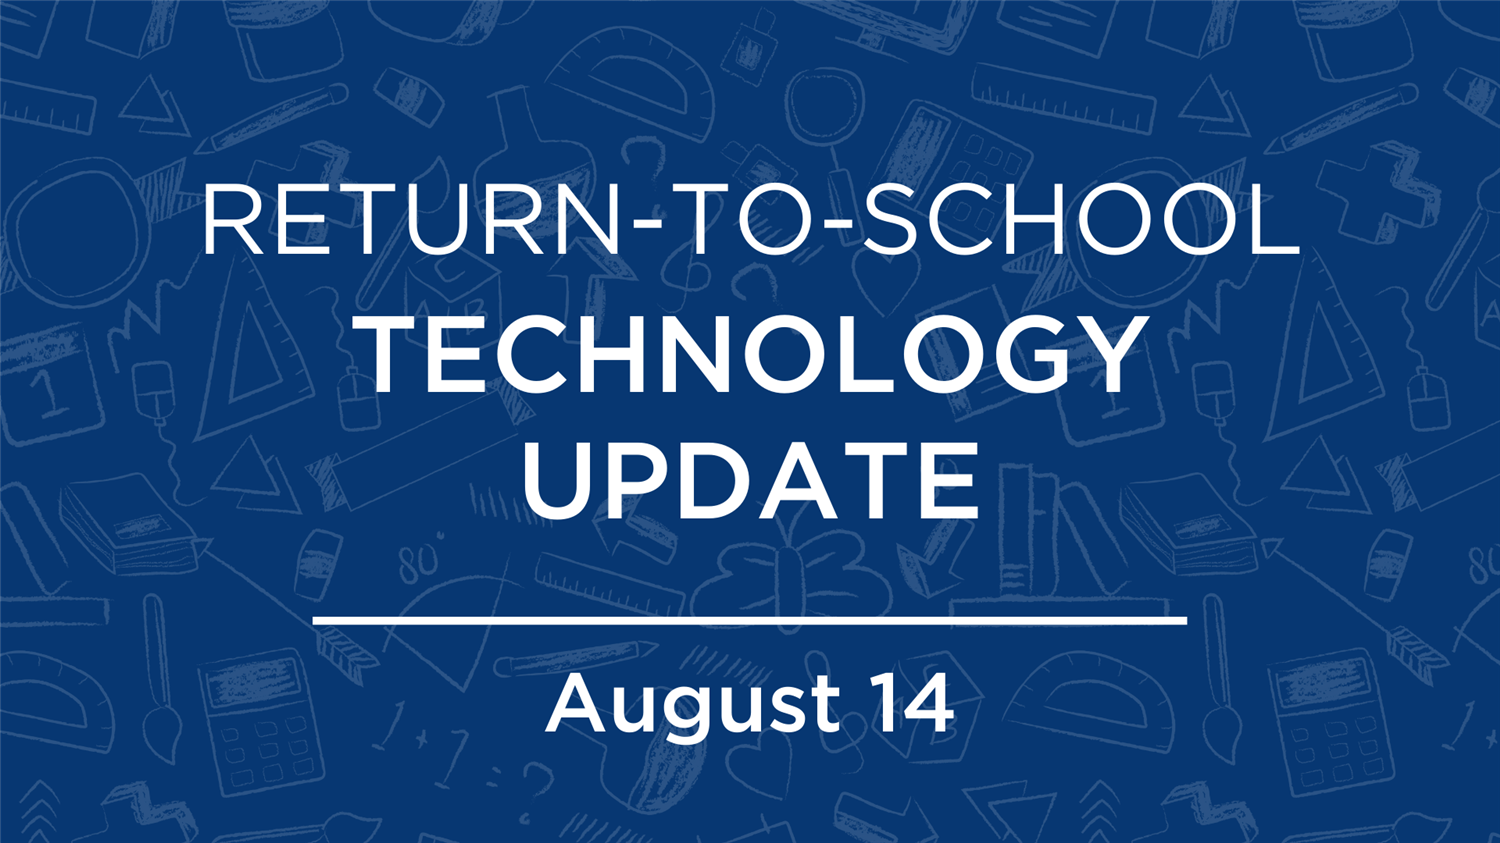 LISD Technology Update